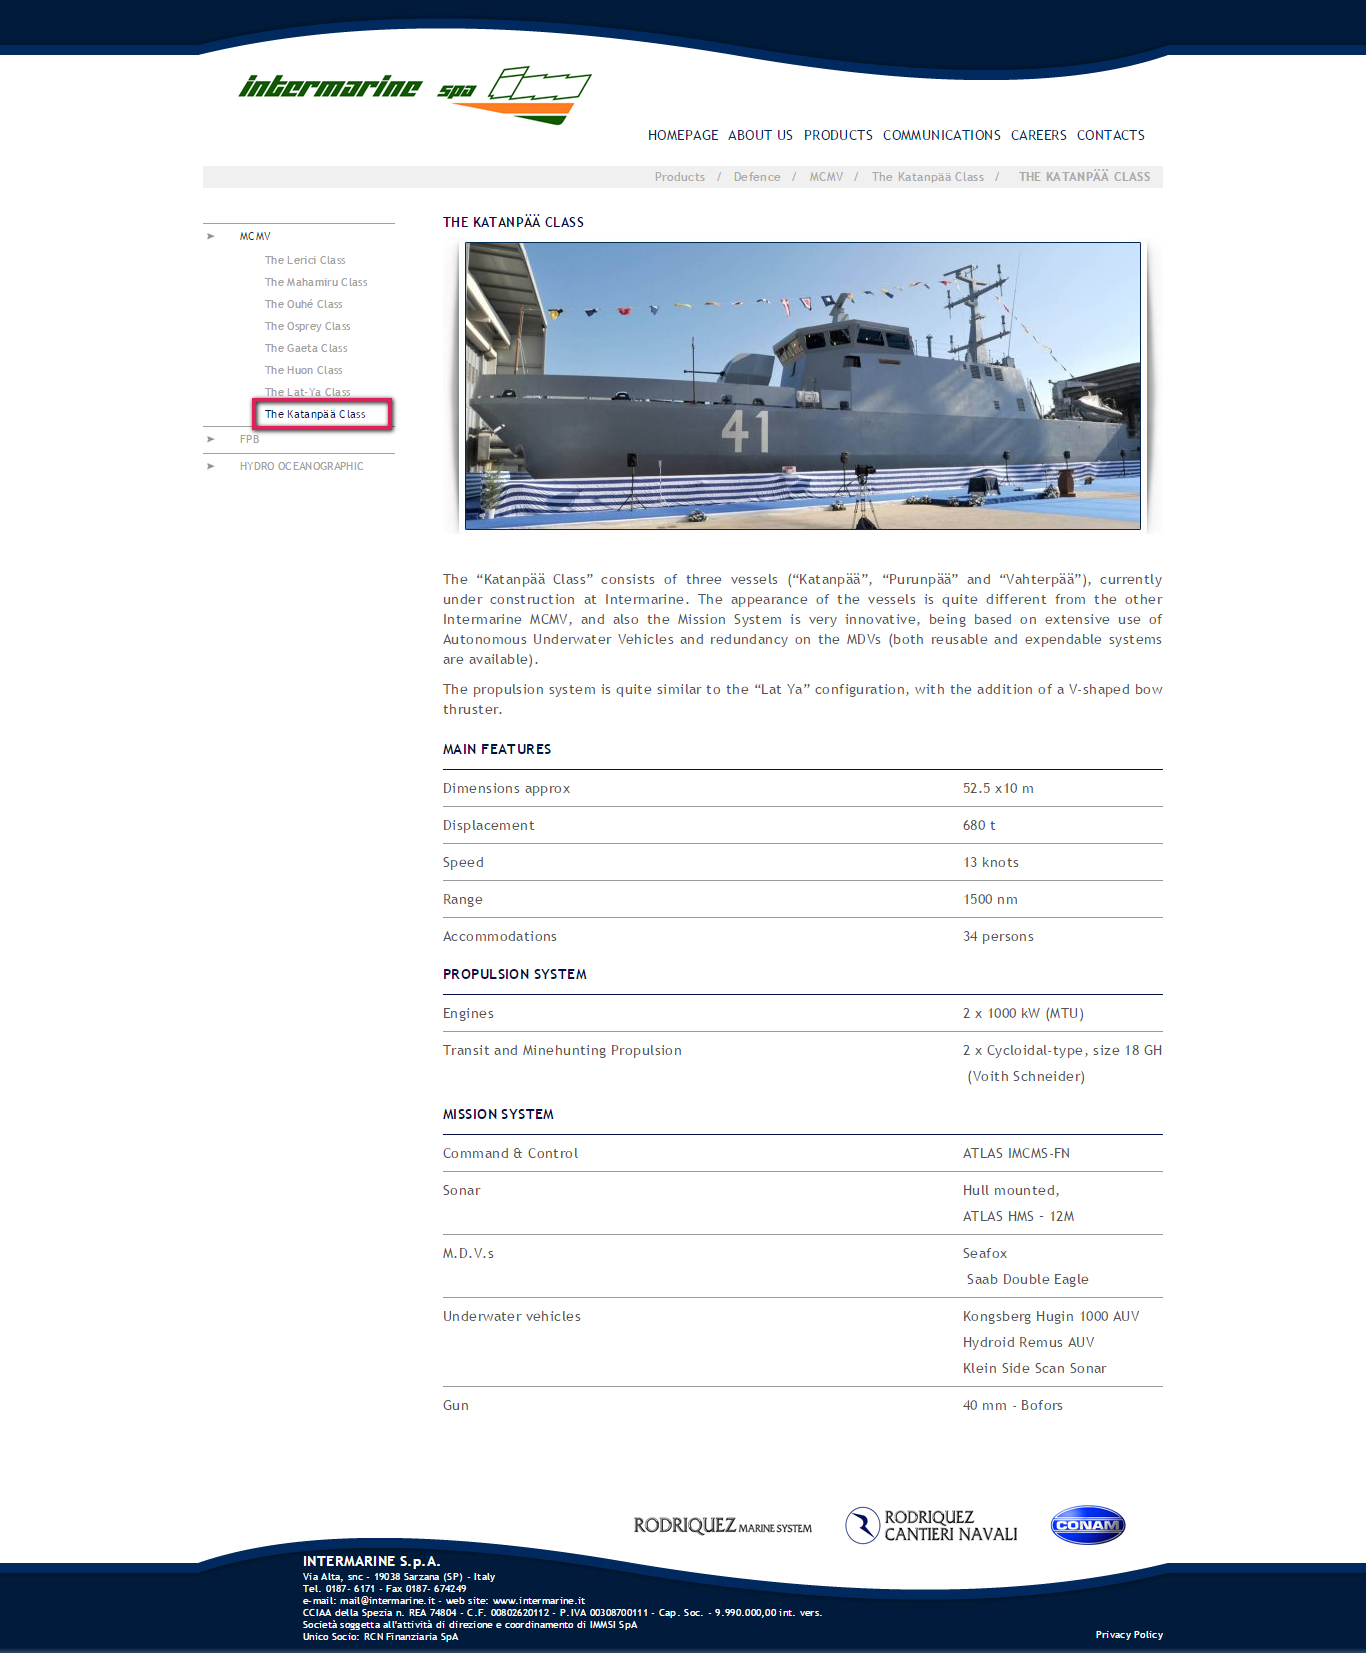 screenshot-www.intermarine.it 2016-04-05 19-28-51.png